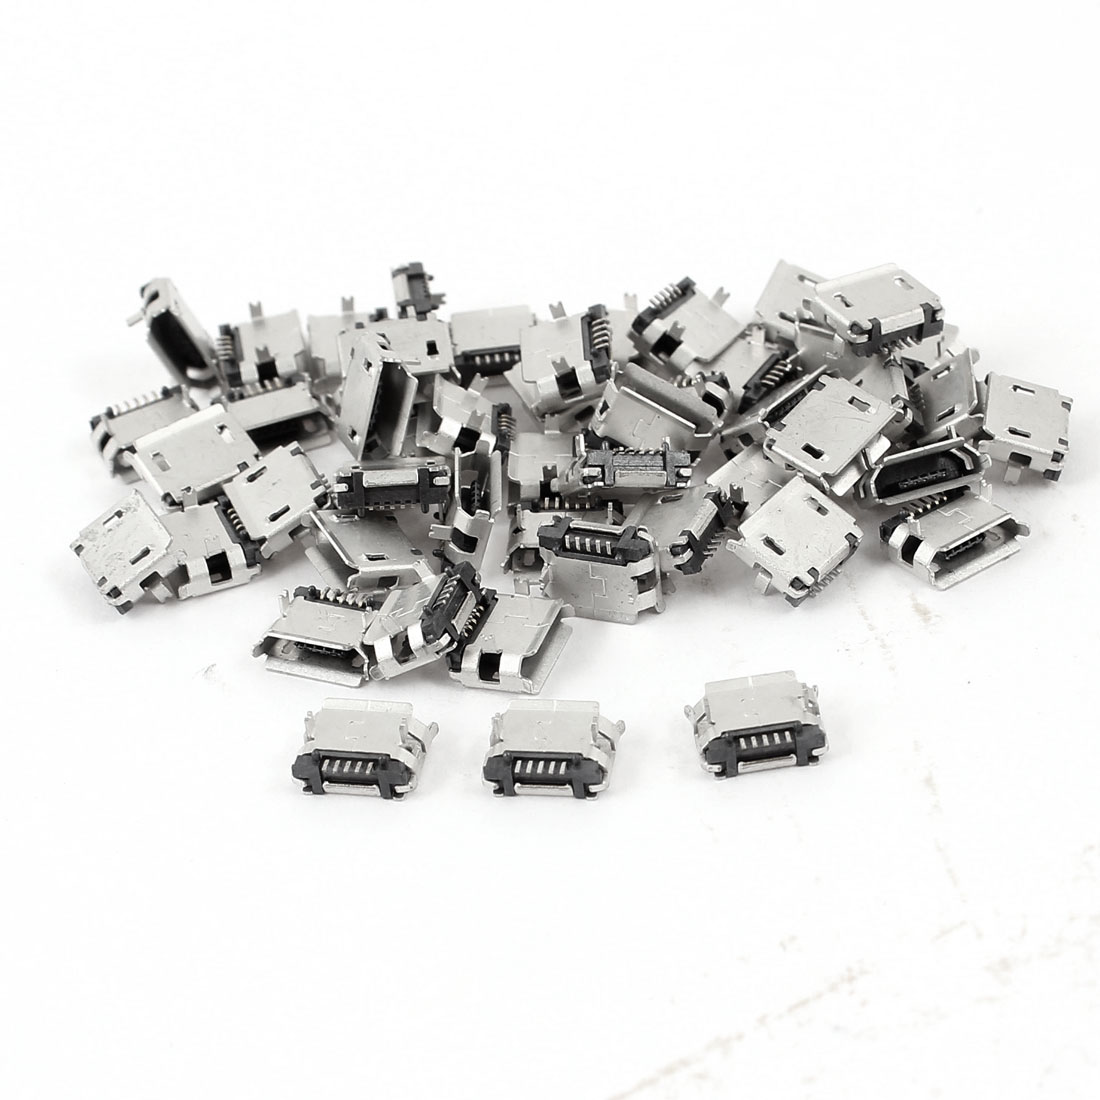 50 Pcs PCB SMT Micro USB Type B 5Pin Female Socket Adapter Connector